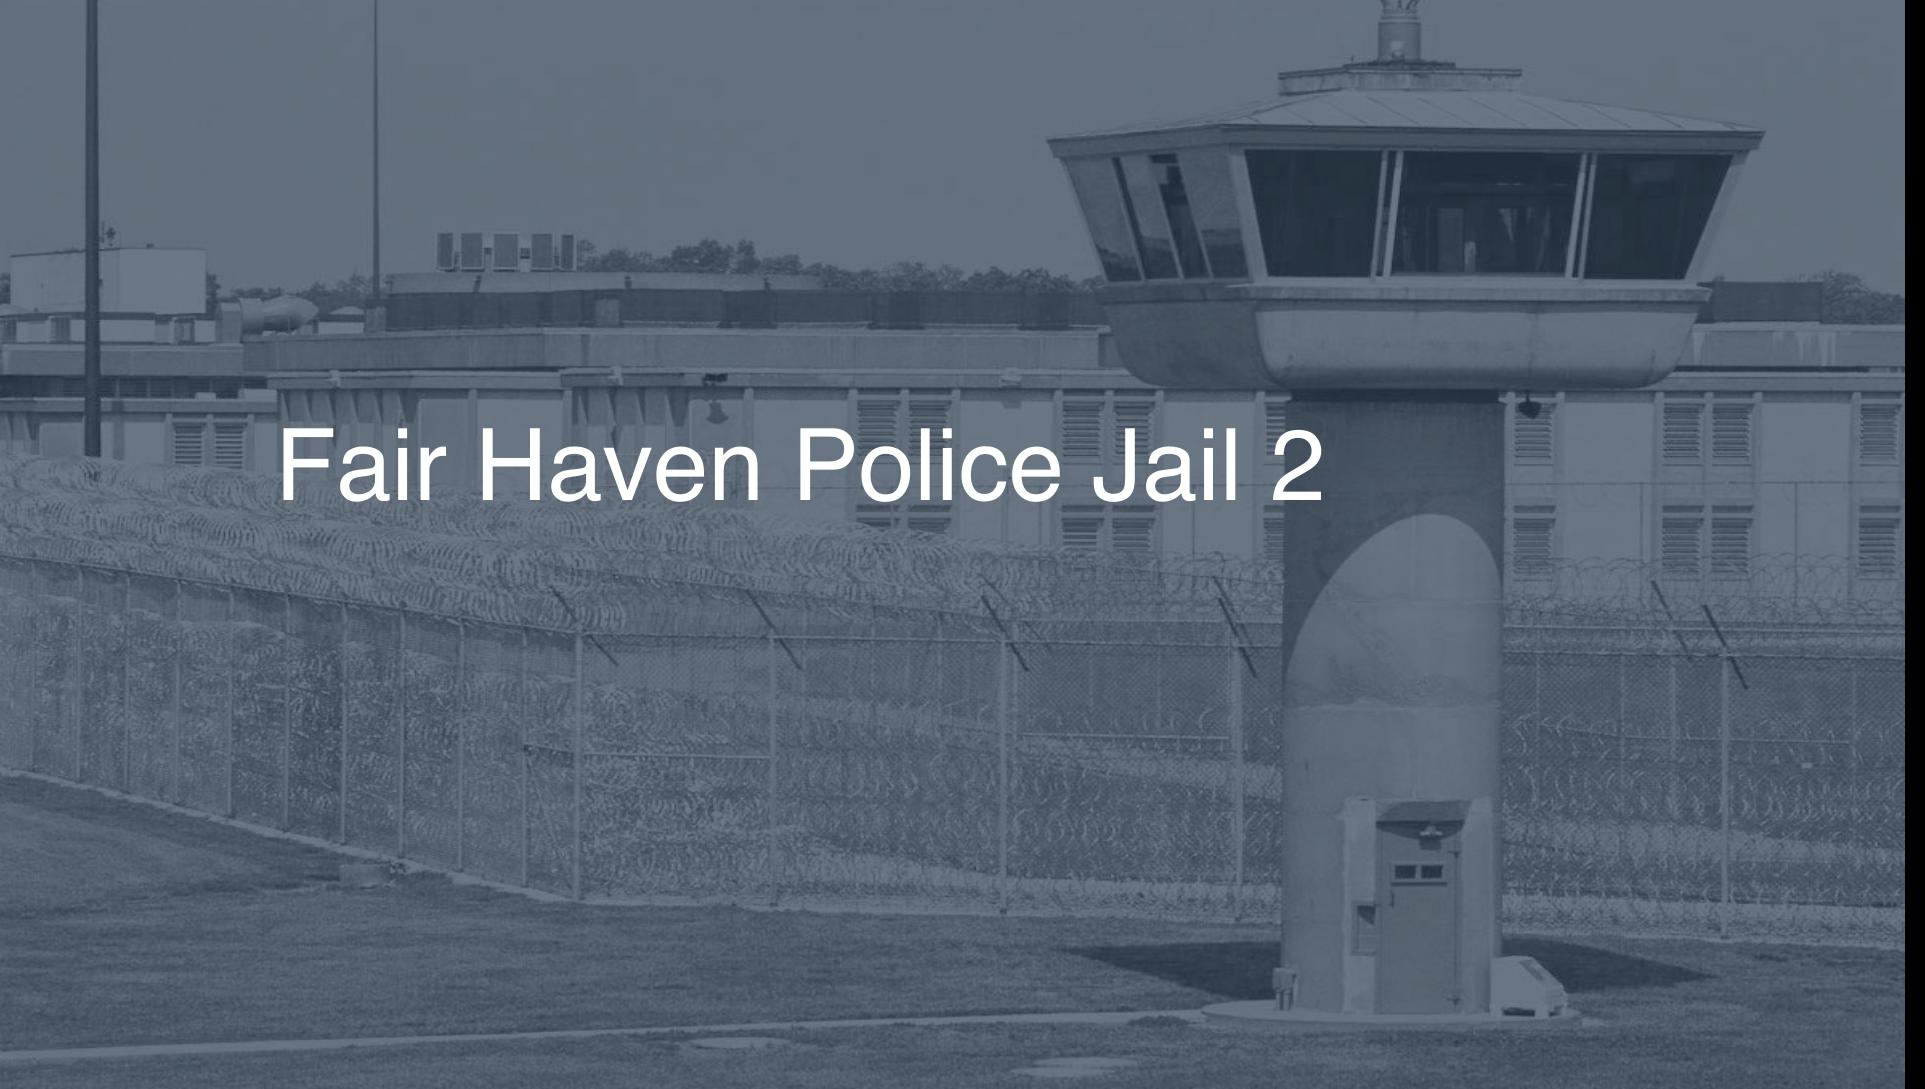 Fair Haven Police Jail correctional facility picture